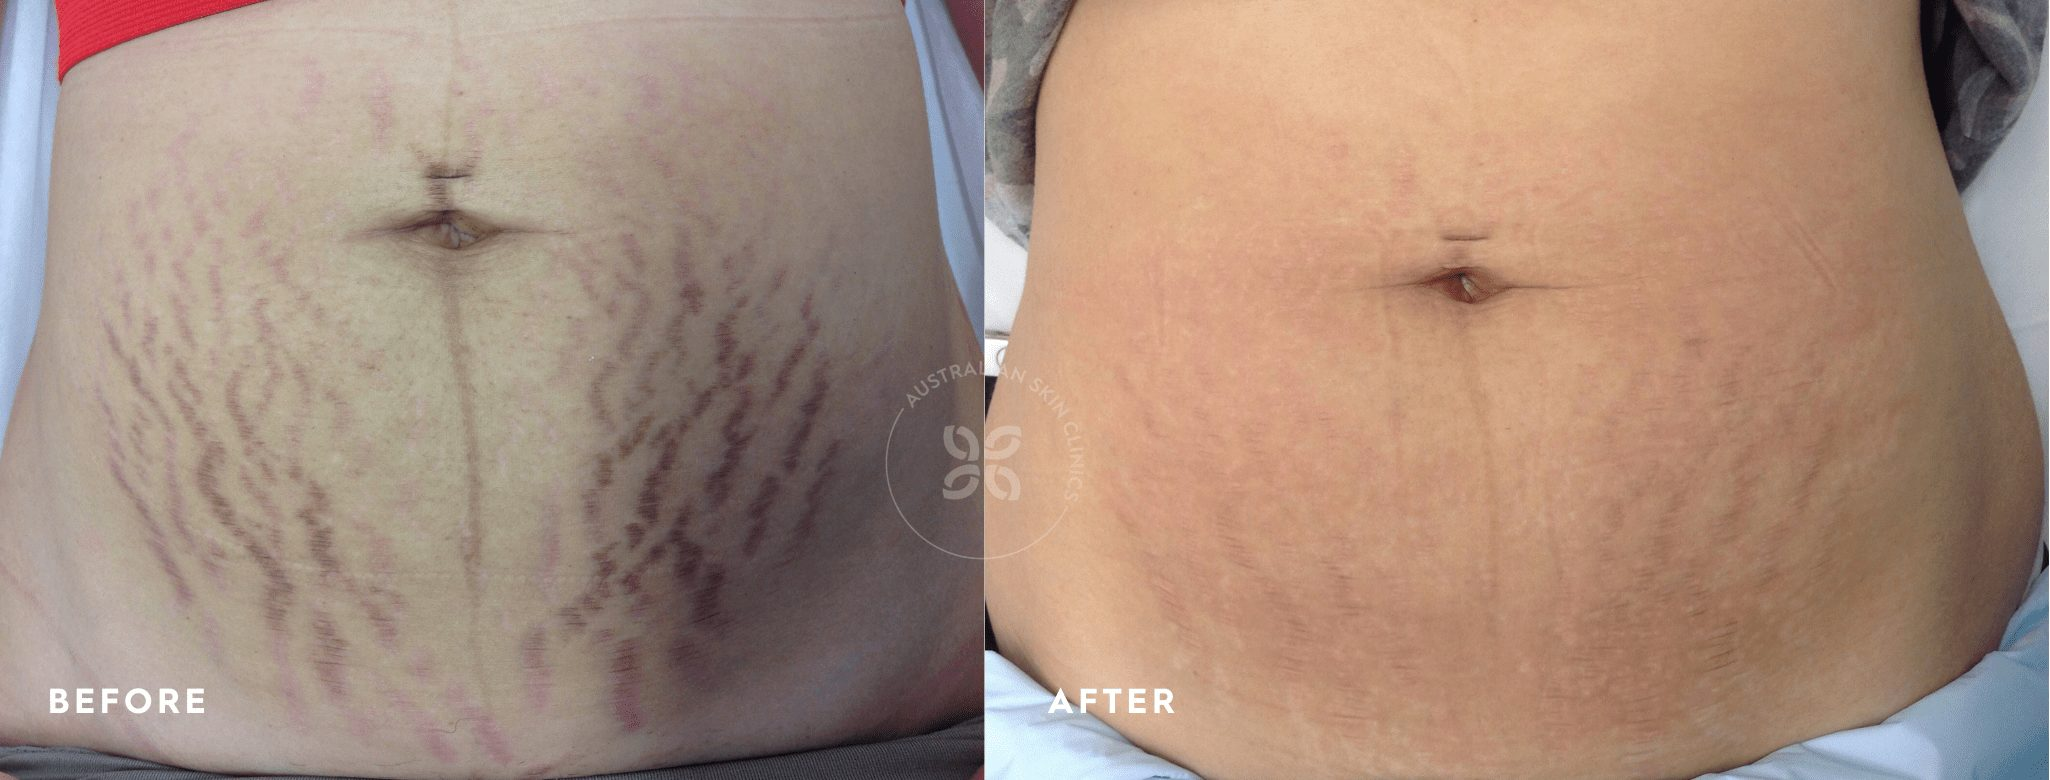 Stretch marks before and after fractional